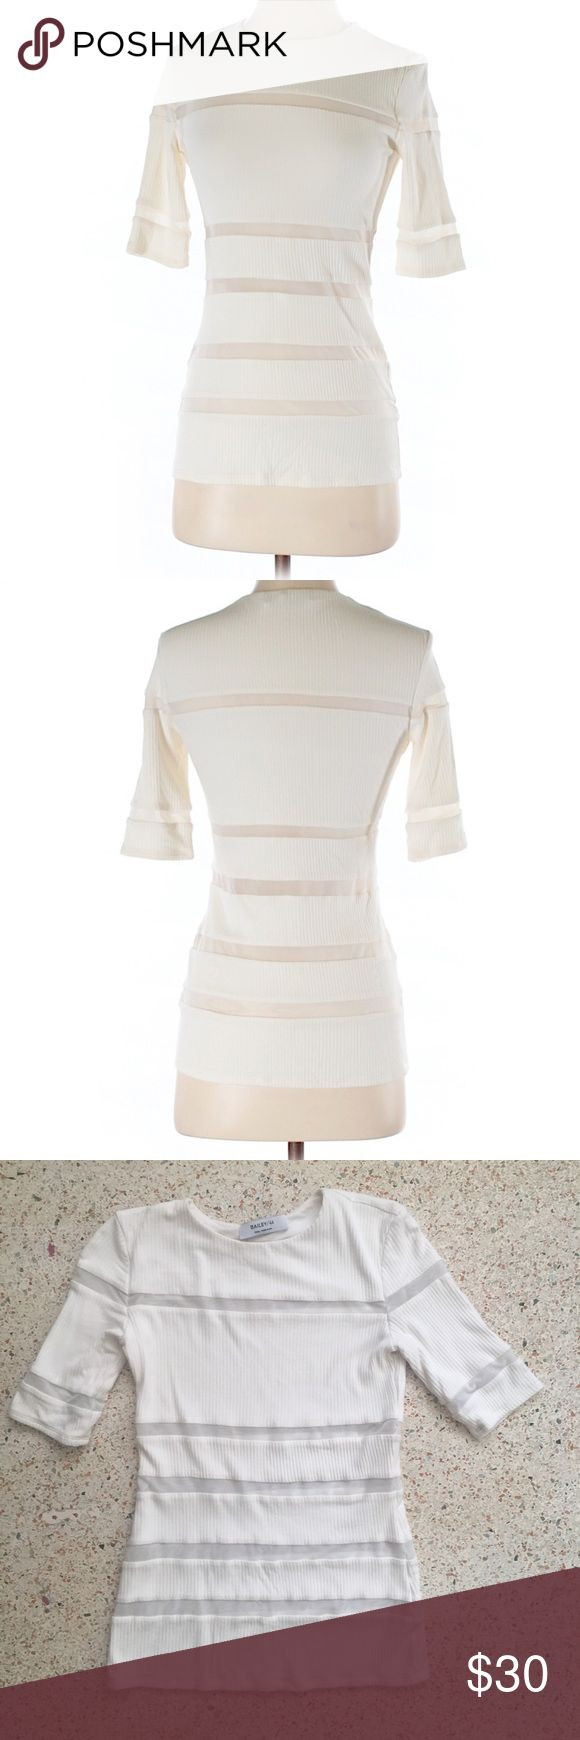 Like New! Bailey 44 Cream Women's Top Size Small Never worn and bought for $158.  All photos above are of actually top (including mannequin pics).  Mesh stripes that are slightly transparent give this top a fun trendy touch.  Size US Women's Small. Bailey 44 Tops